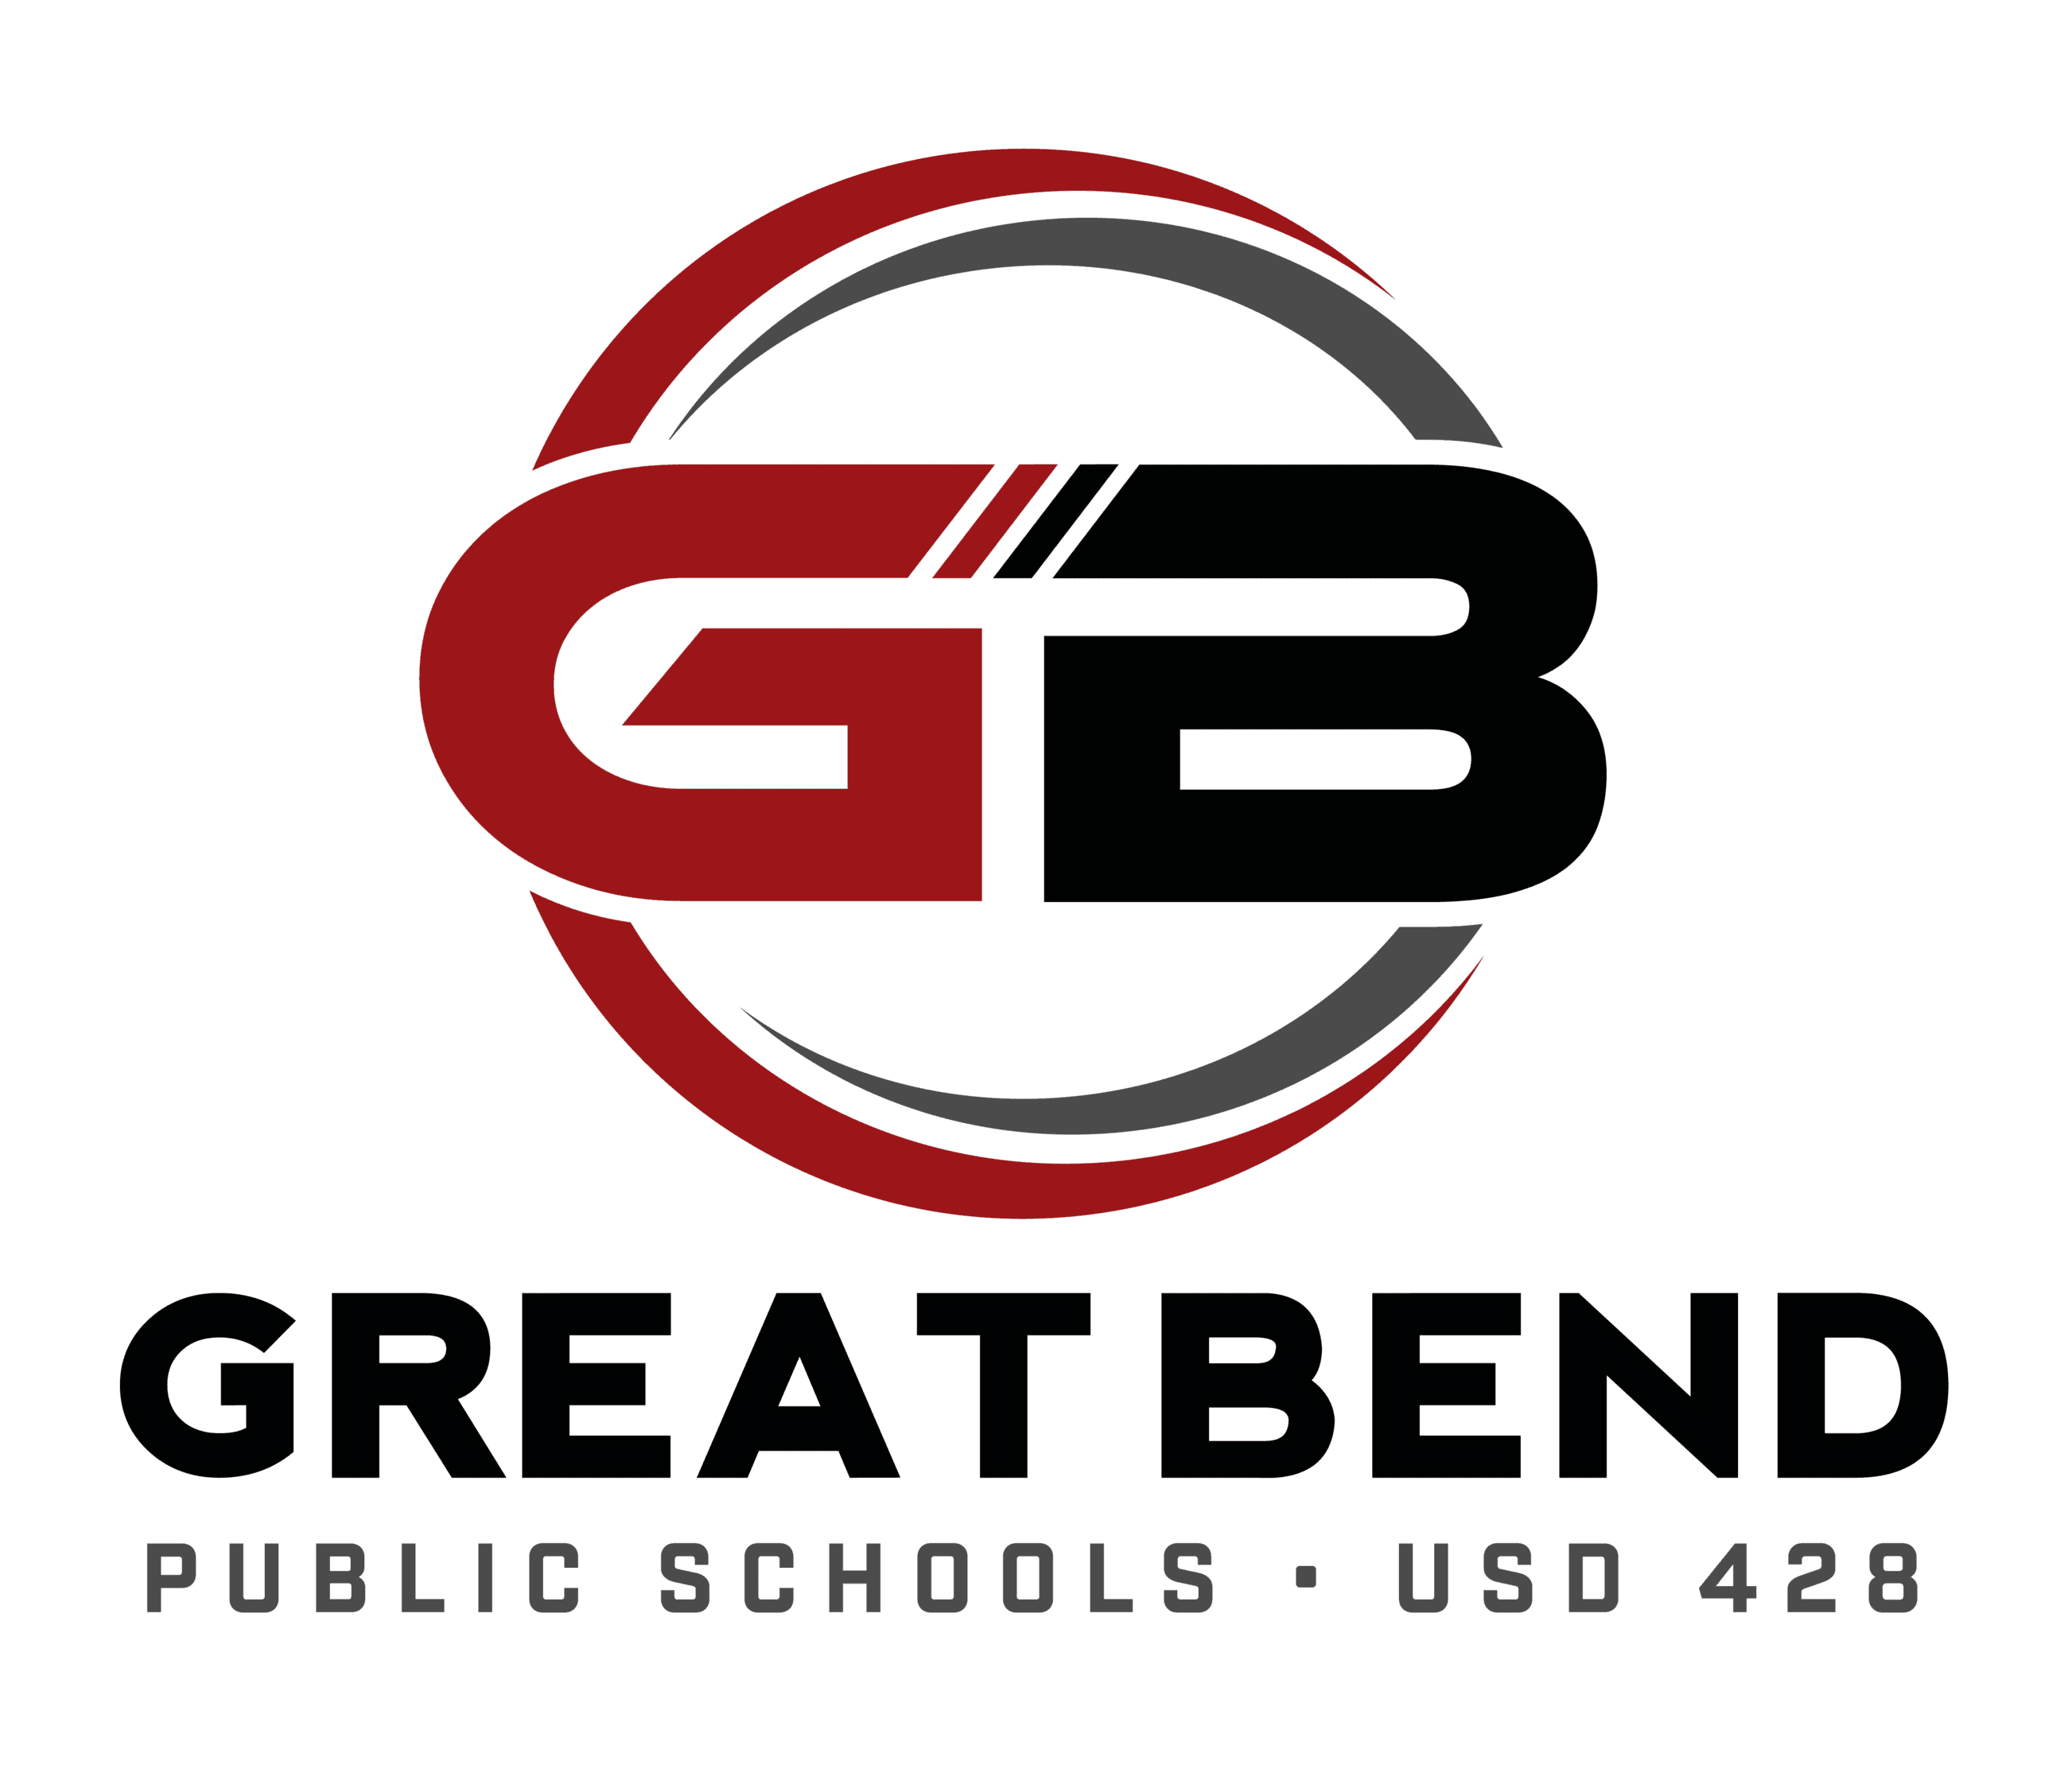 GB Public Schools USD 428 Logo - Circle Version (1)